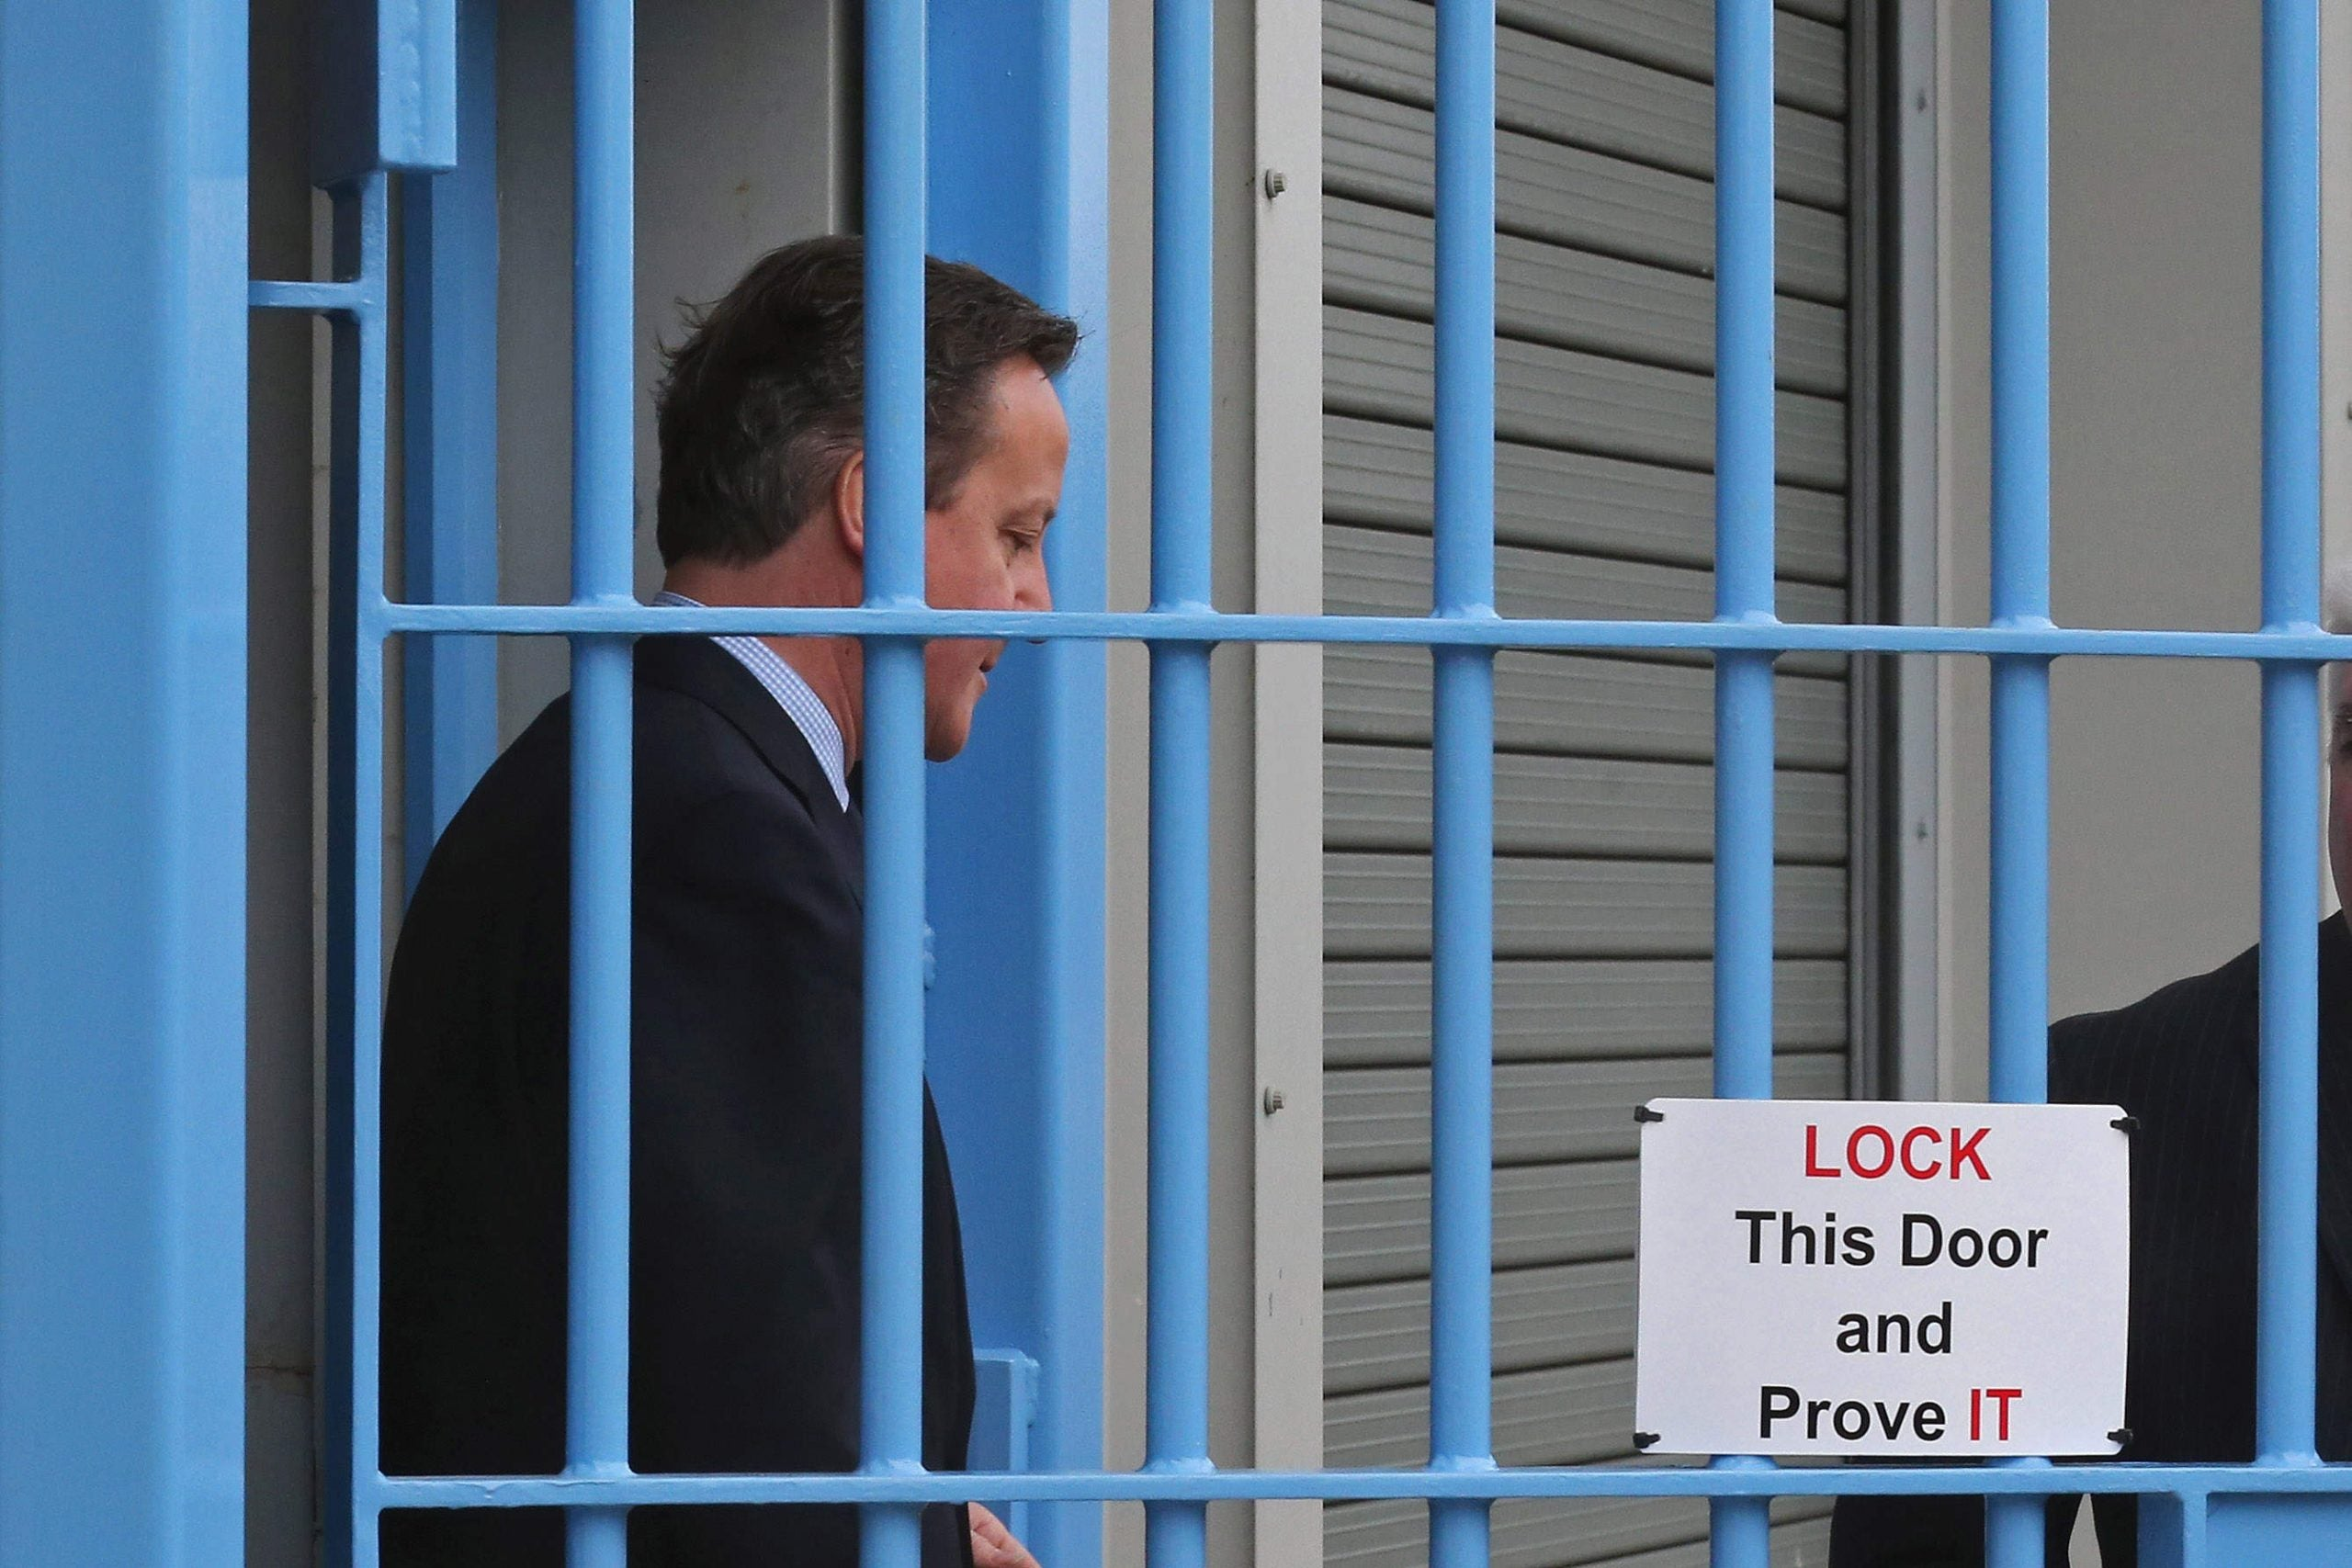 David Cameron's prisons speech could be the start of something good